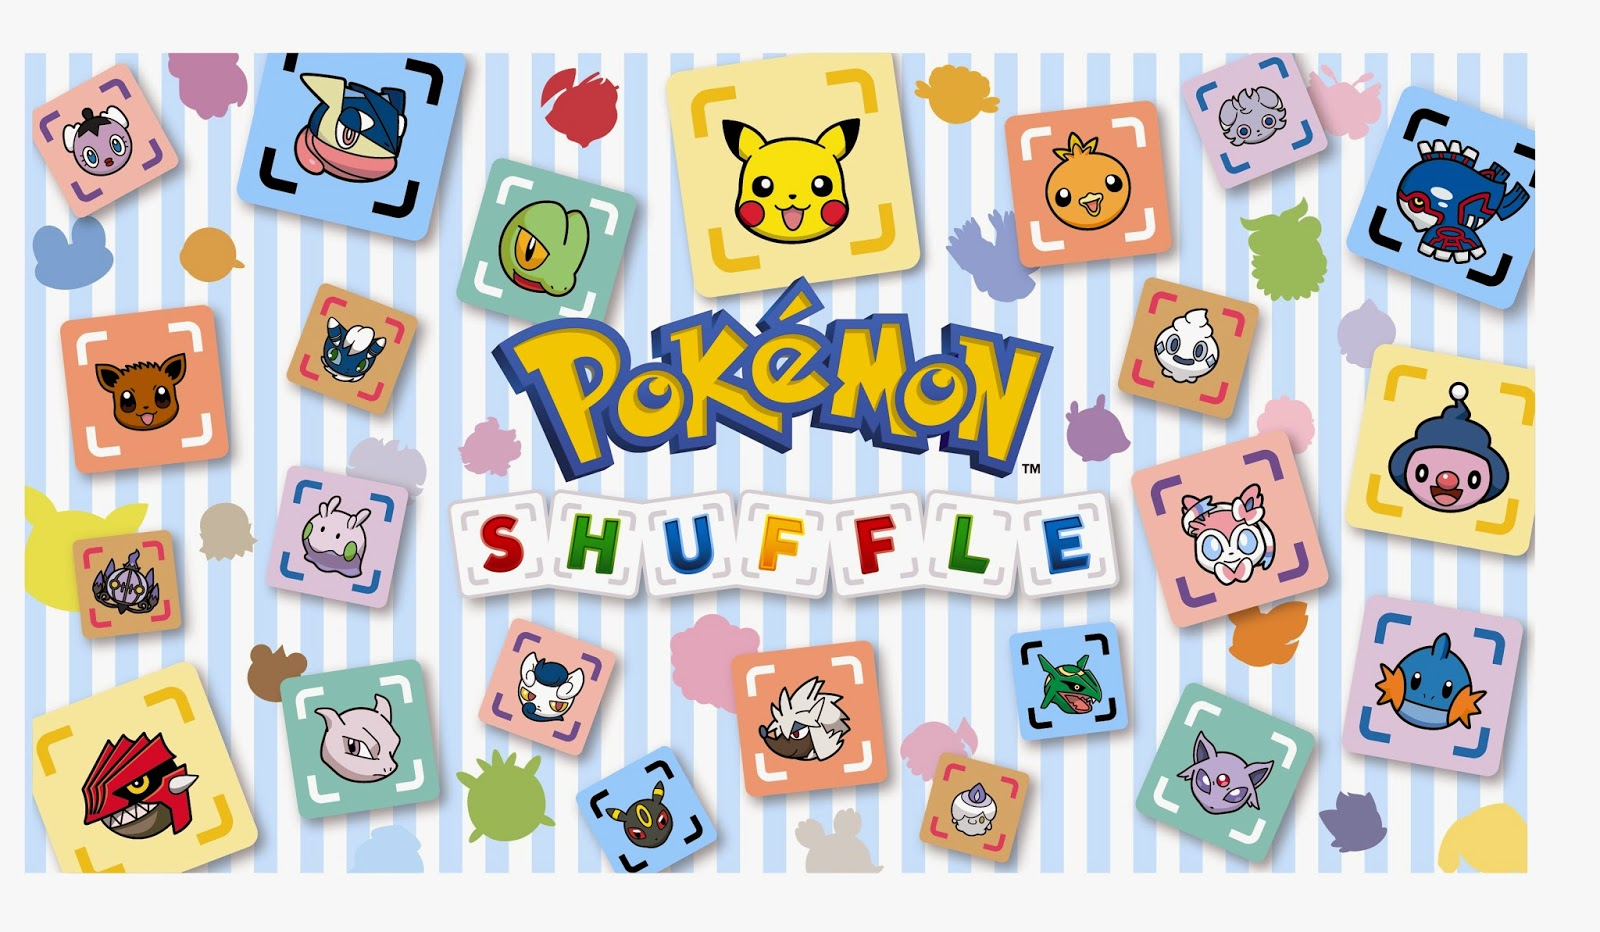 Hoopa Finally Revealed And New Pokemon Shuffle Coming Febuary 2015 - We Know Gamers